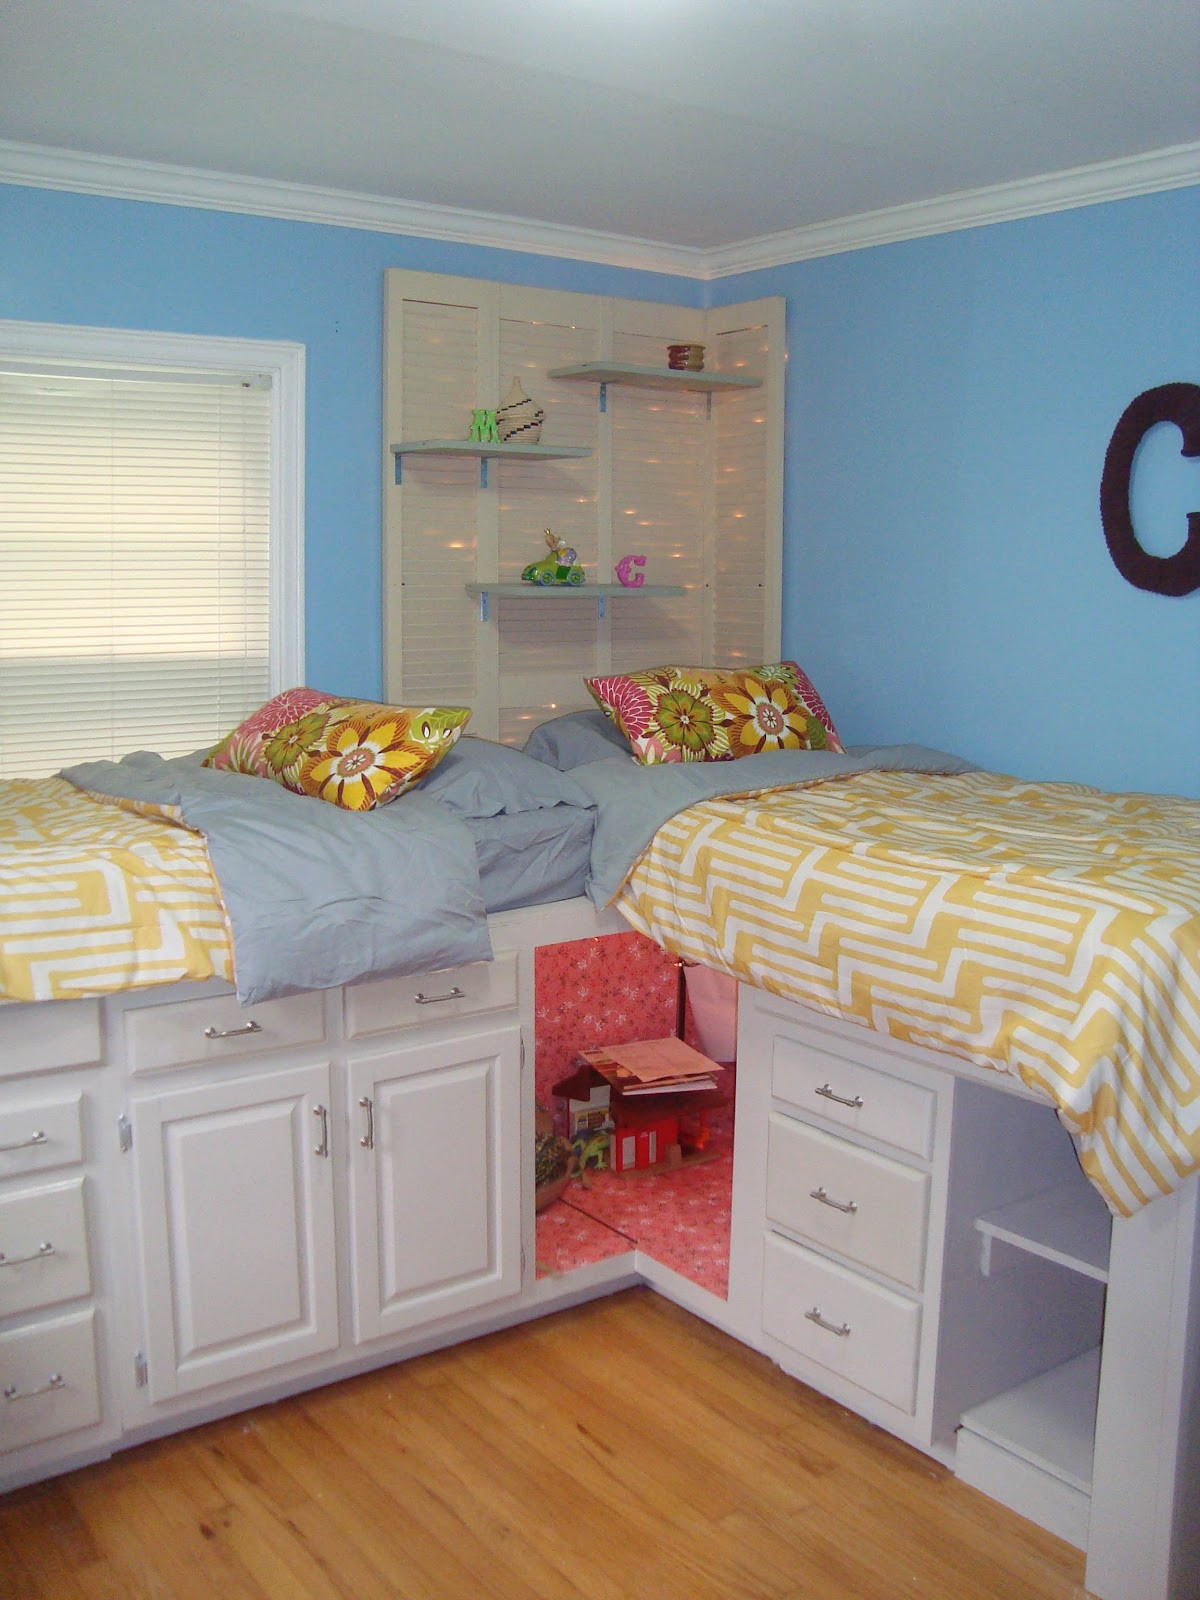 Diy Bedroom Organization  The Pages Beds with Storage for my girls